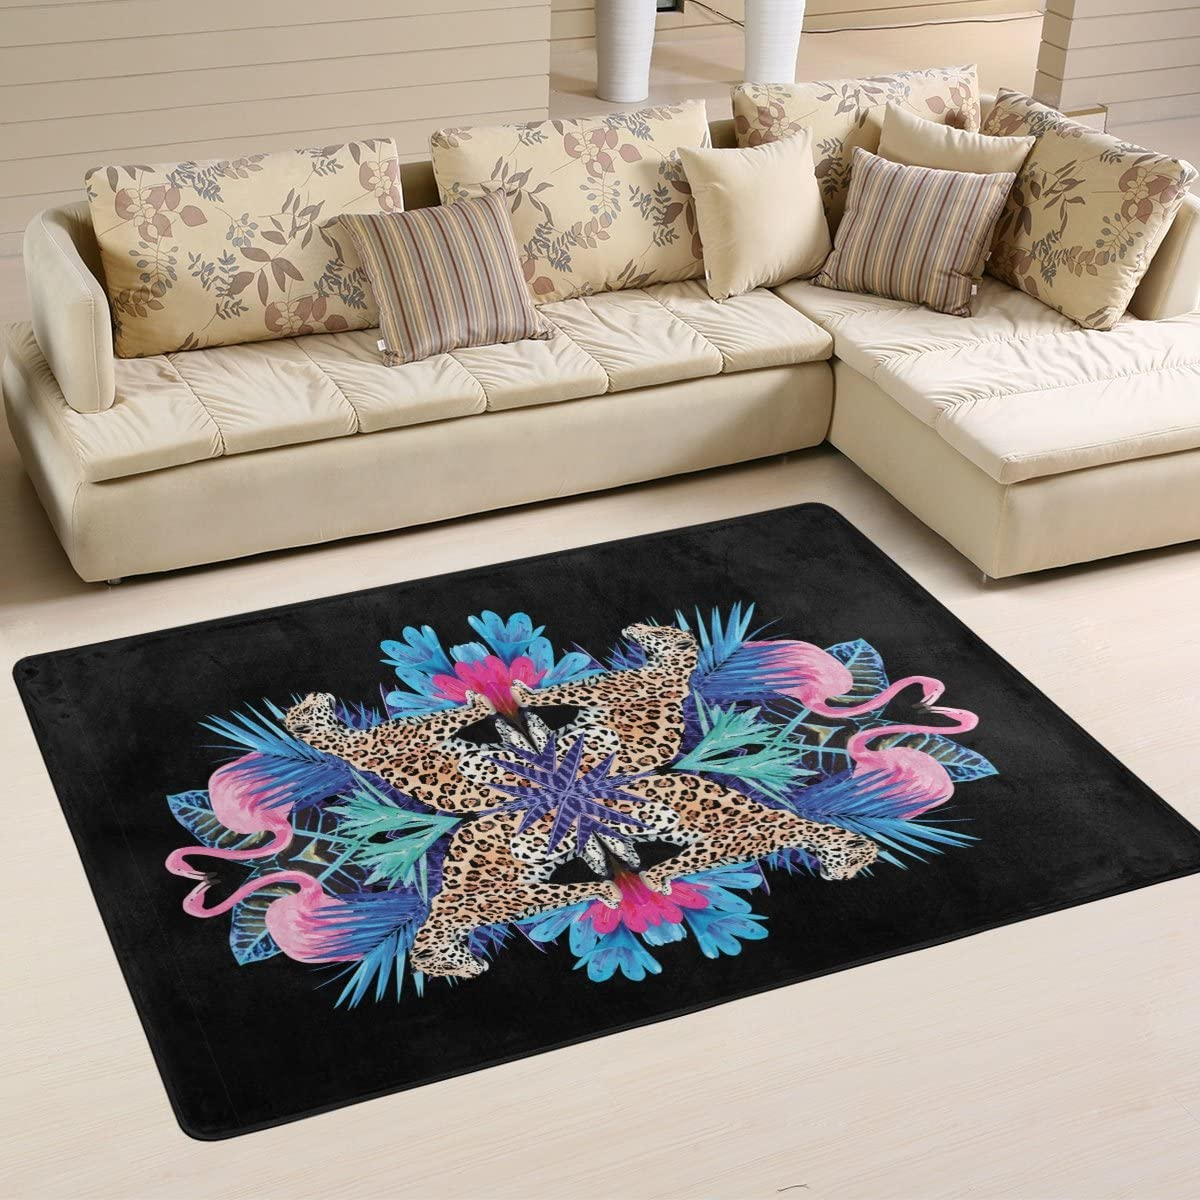 Exotic Bird Pink Flamingos, Leopards and Nature Tropical Plant Leaf Area Rug Pad Non-Slip Kitchen Floor Mat for Living Room Bedroom 5 x 7 Doormats Home Decor